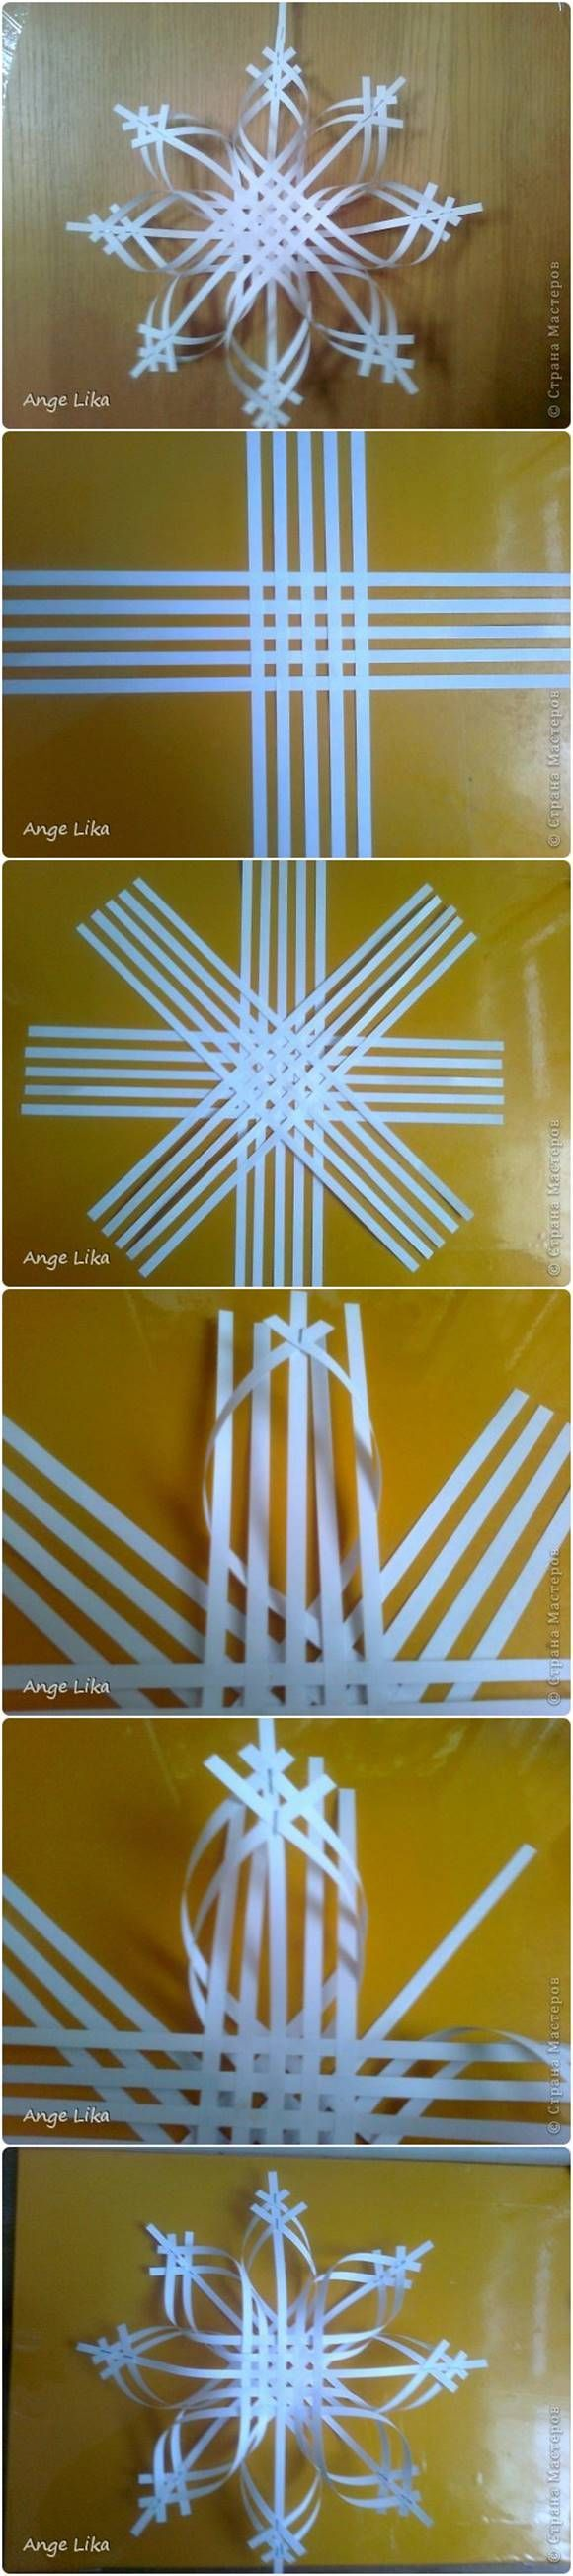 Creative Ideas – DIY 3D Paper Snowflake Christmas Ornament …